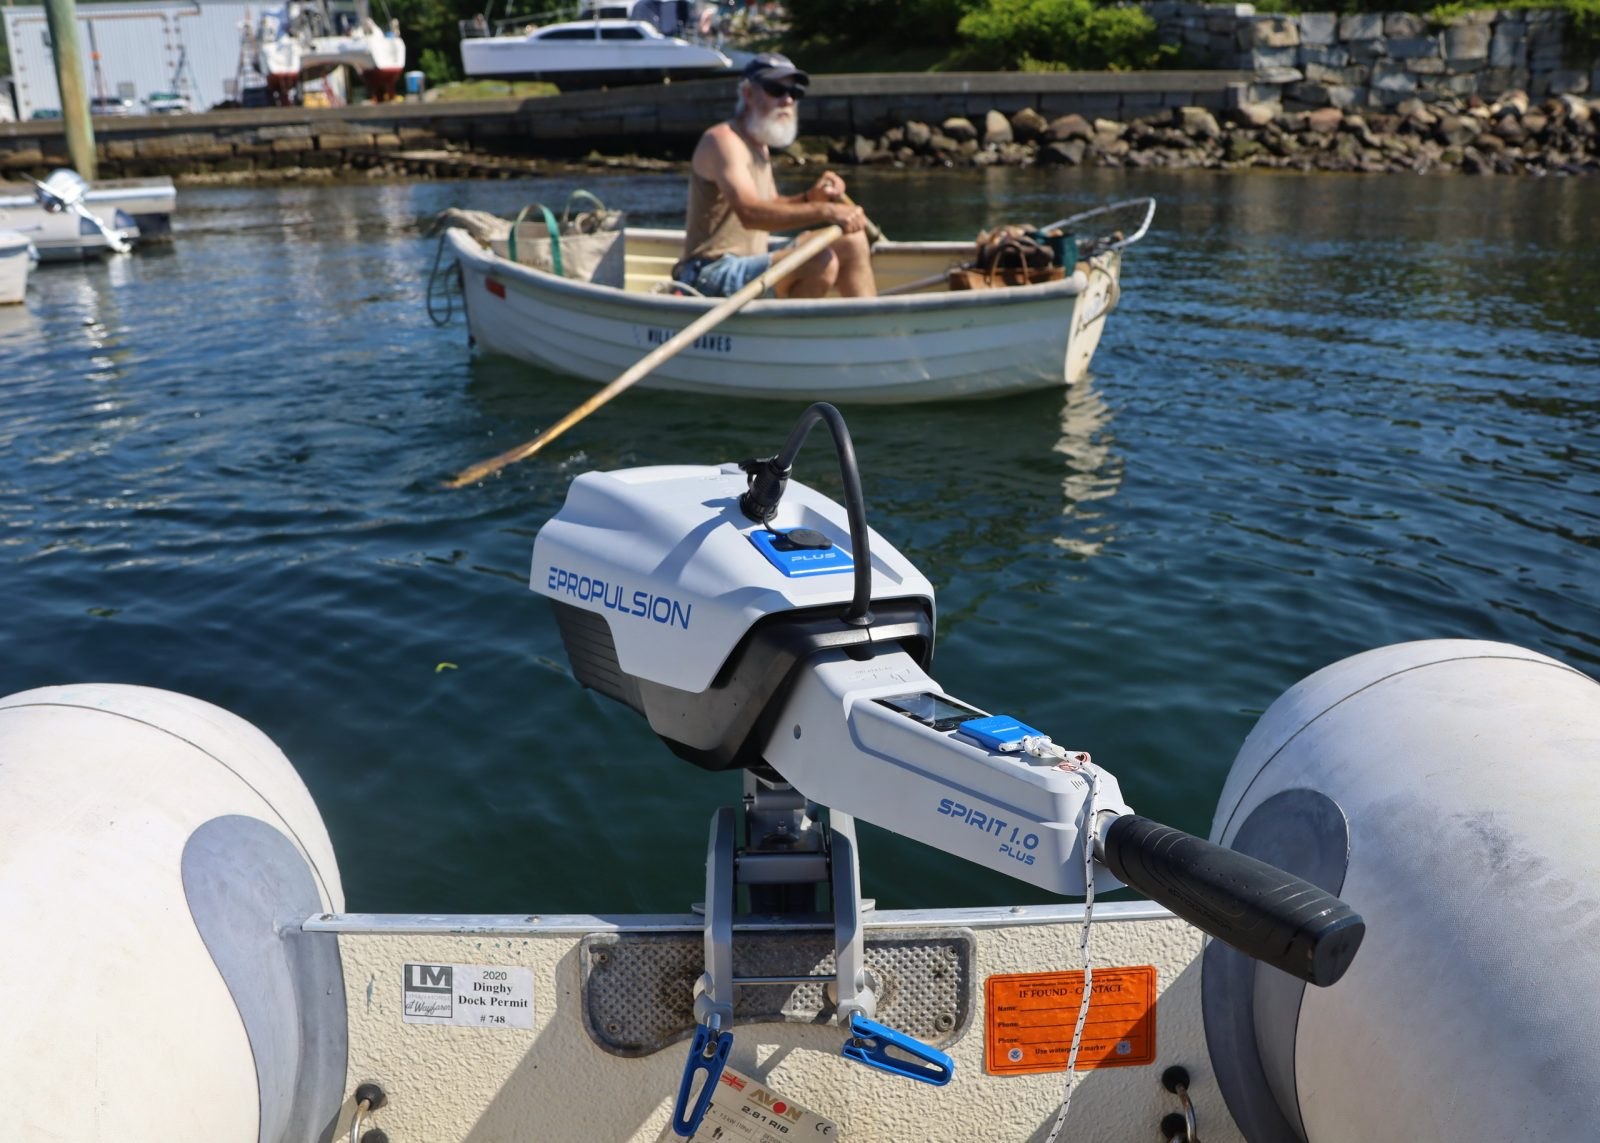 Capt. Dan Pease, owner of two Torqeedo outboards, was also onhand for the testing